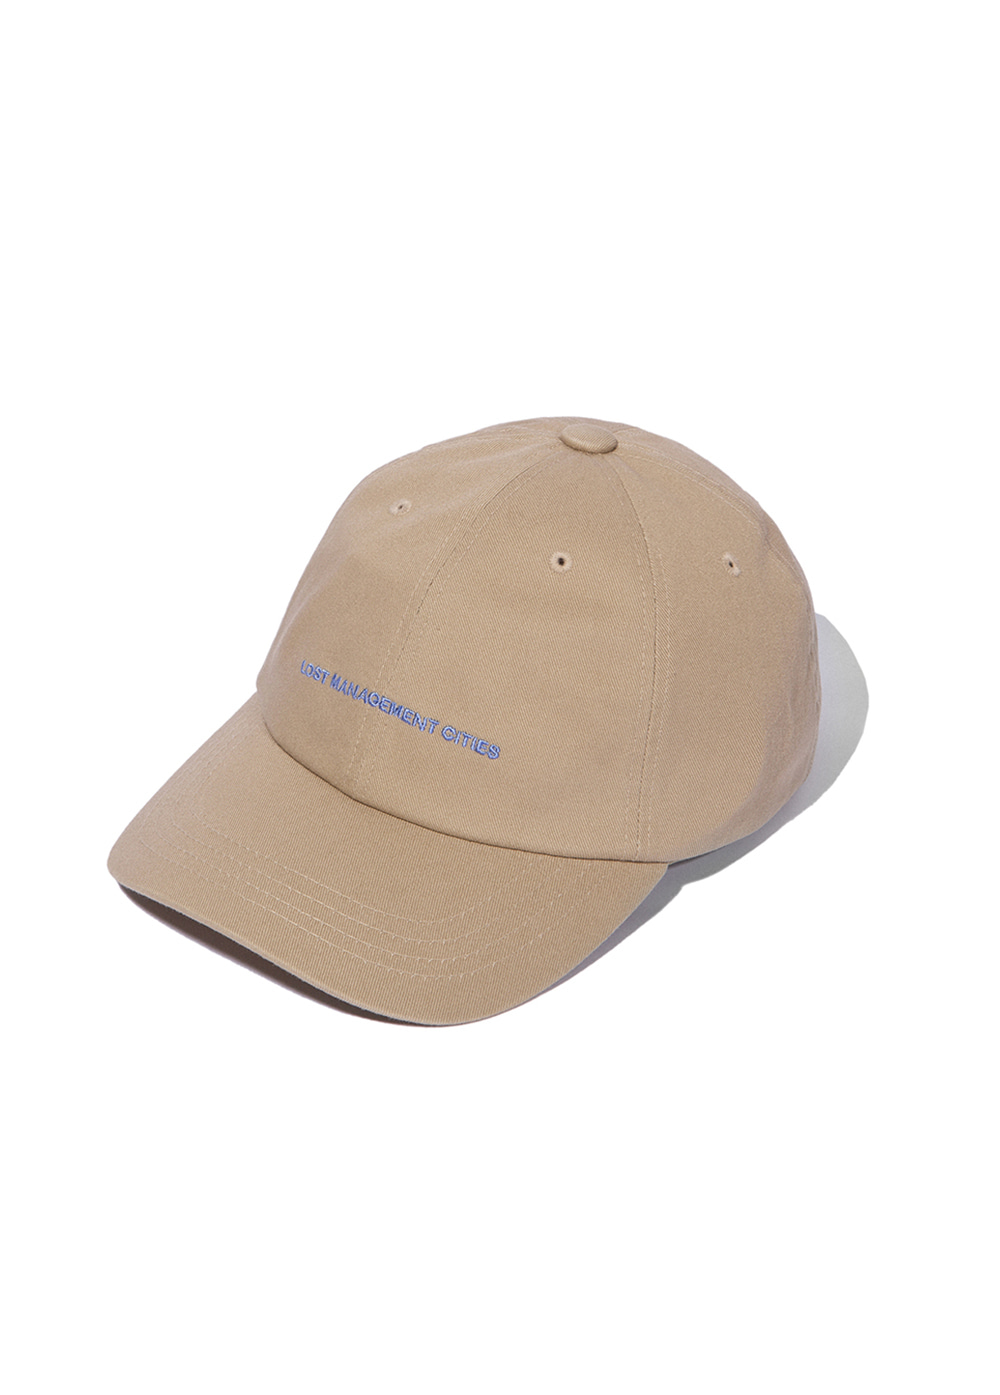 LMC CAPITAL LOGO 6 PANEL CAP beige